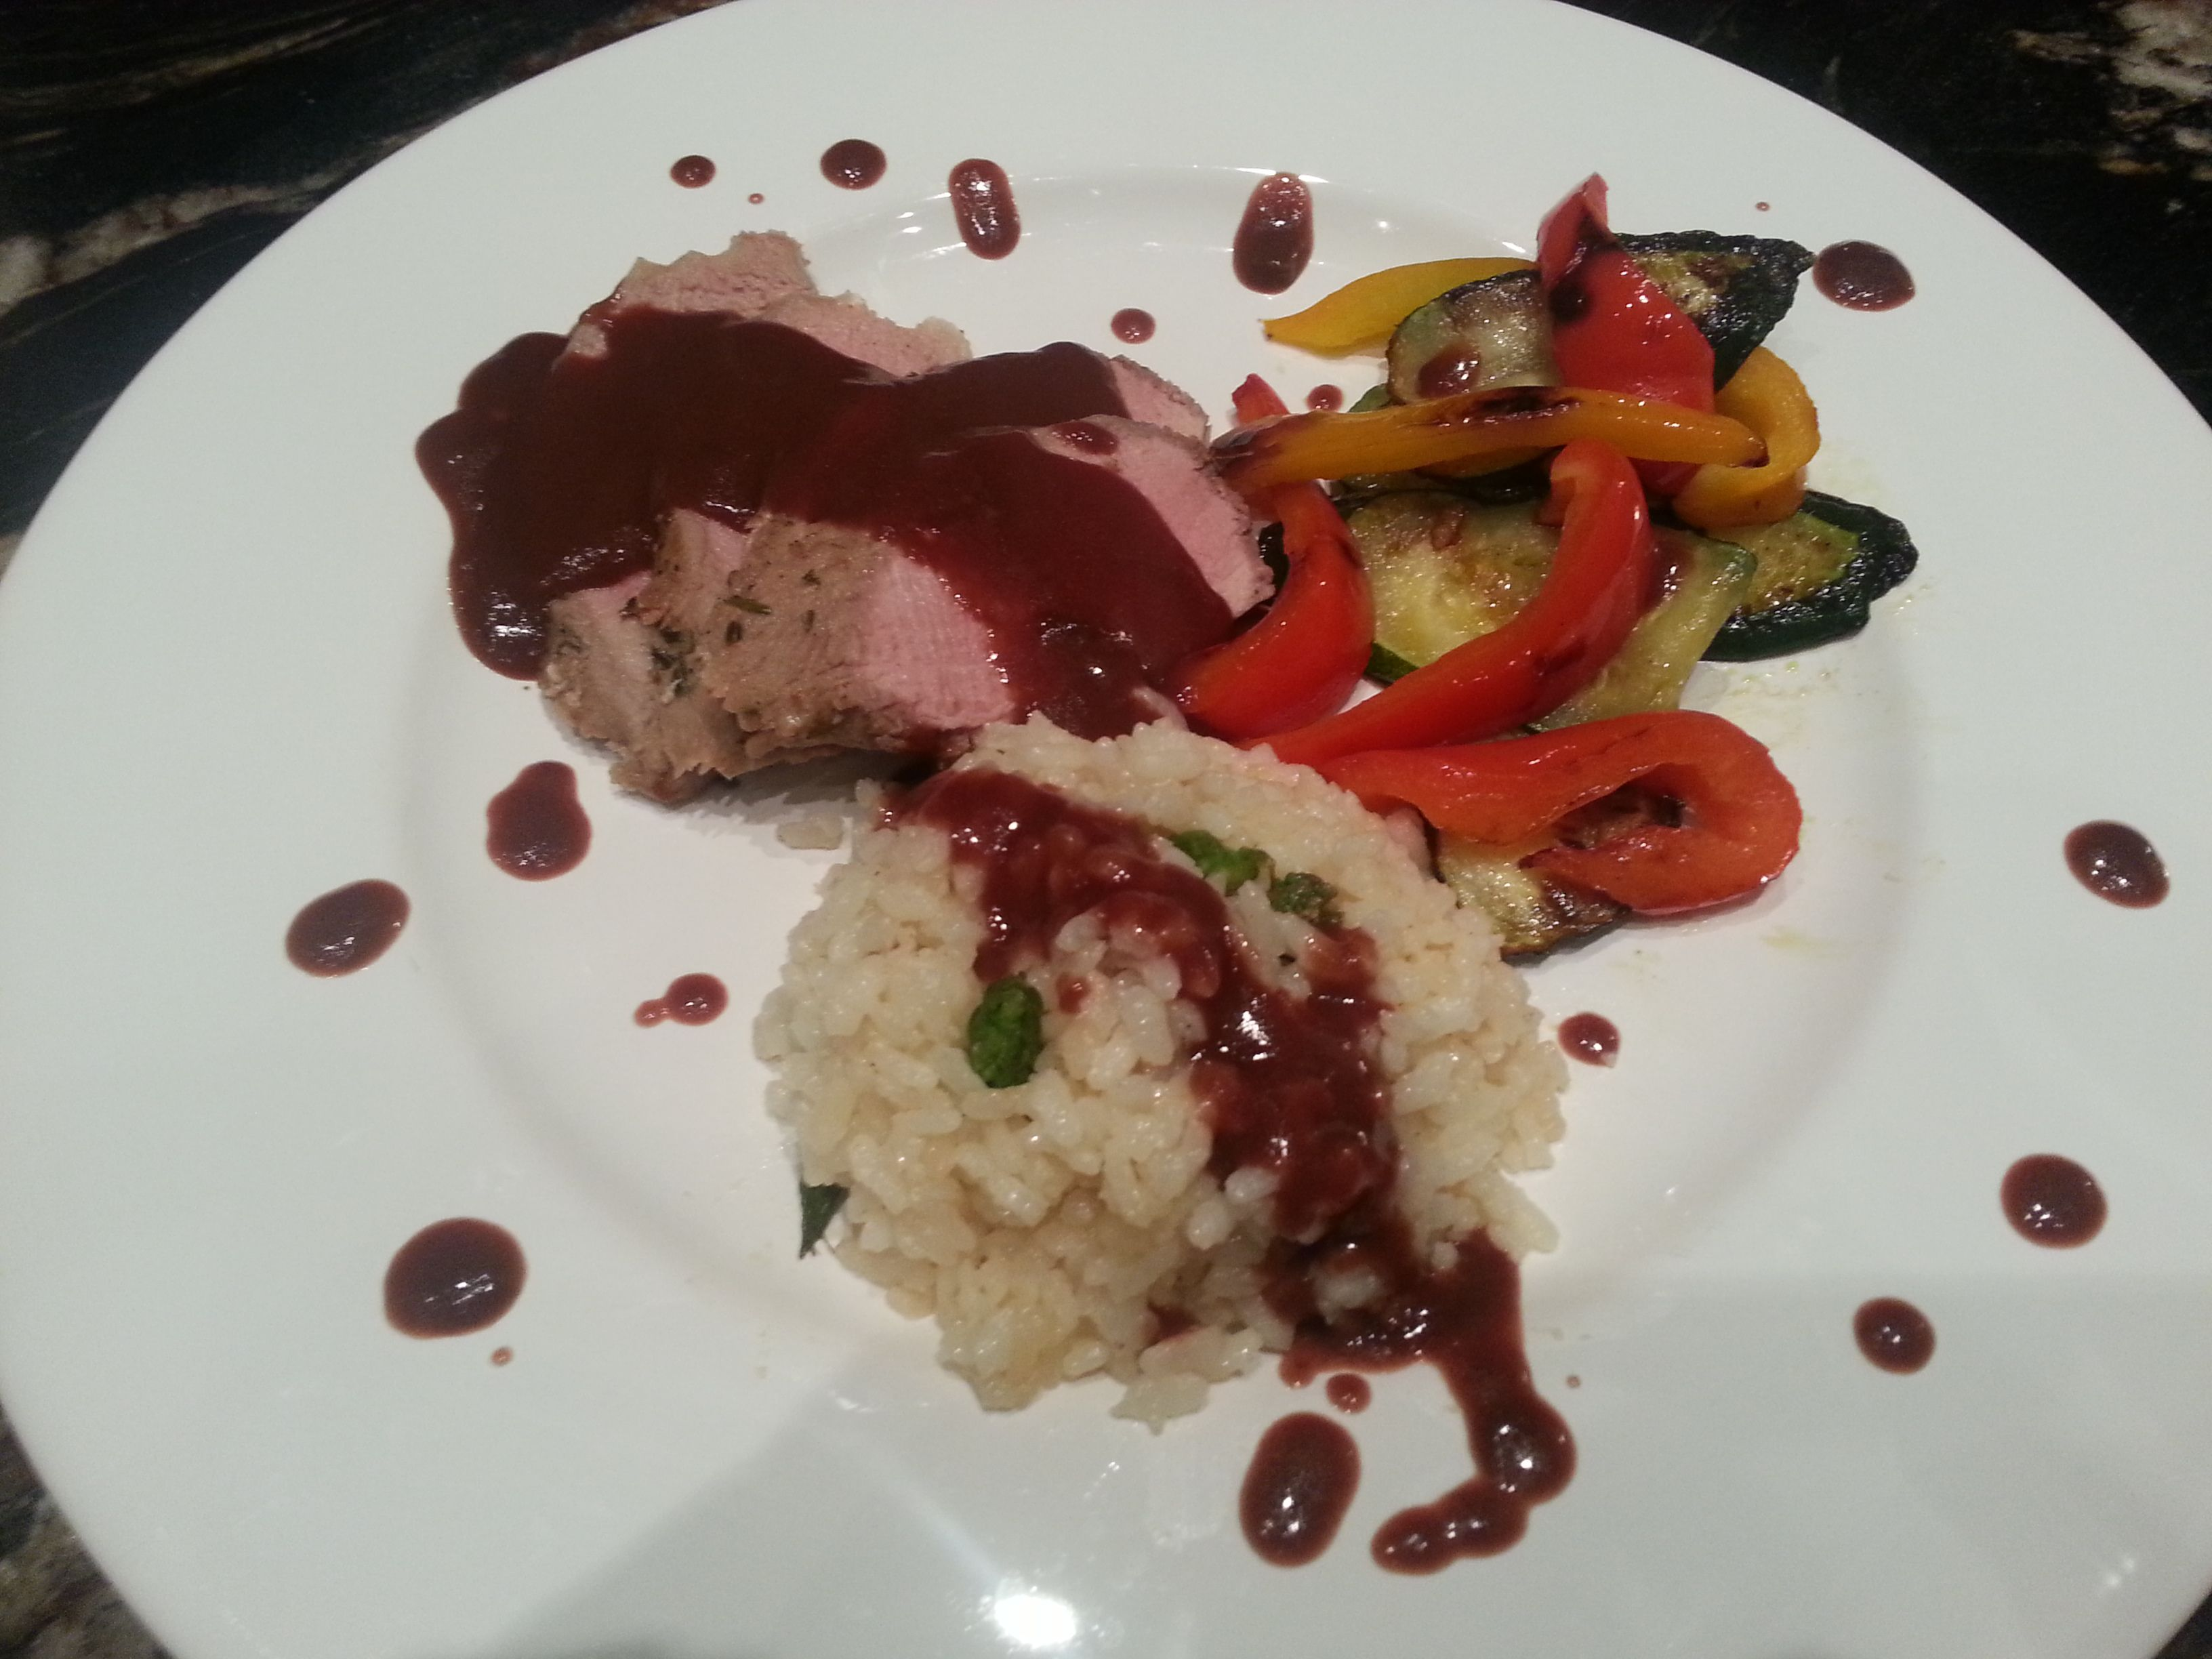 Roast Pork Tenderloin With Red Wine Reduction Risotto With Parmesan And Asparagus Grilled Veg Roasted Pork Tenderloins Red Wine Reduction Pork Roast